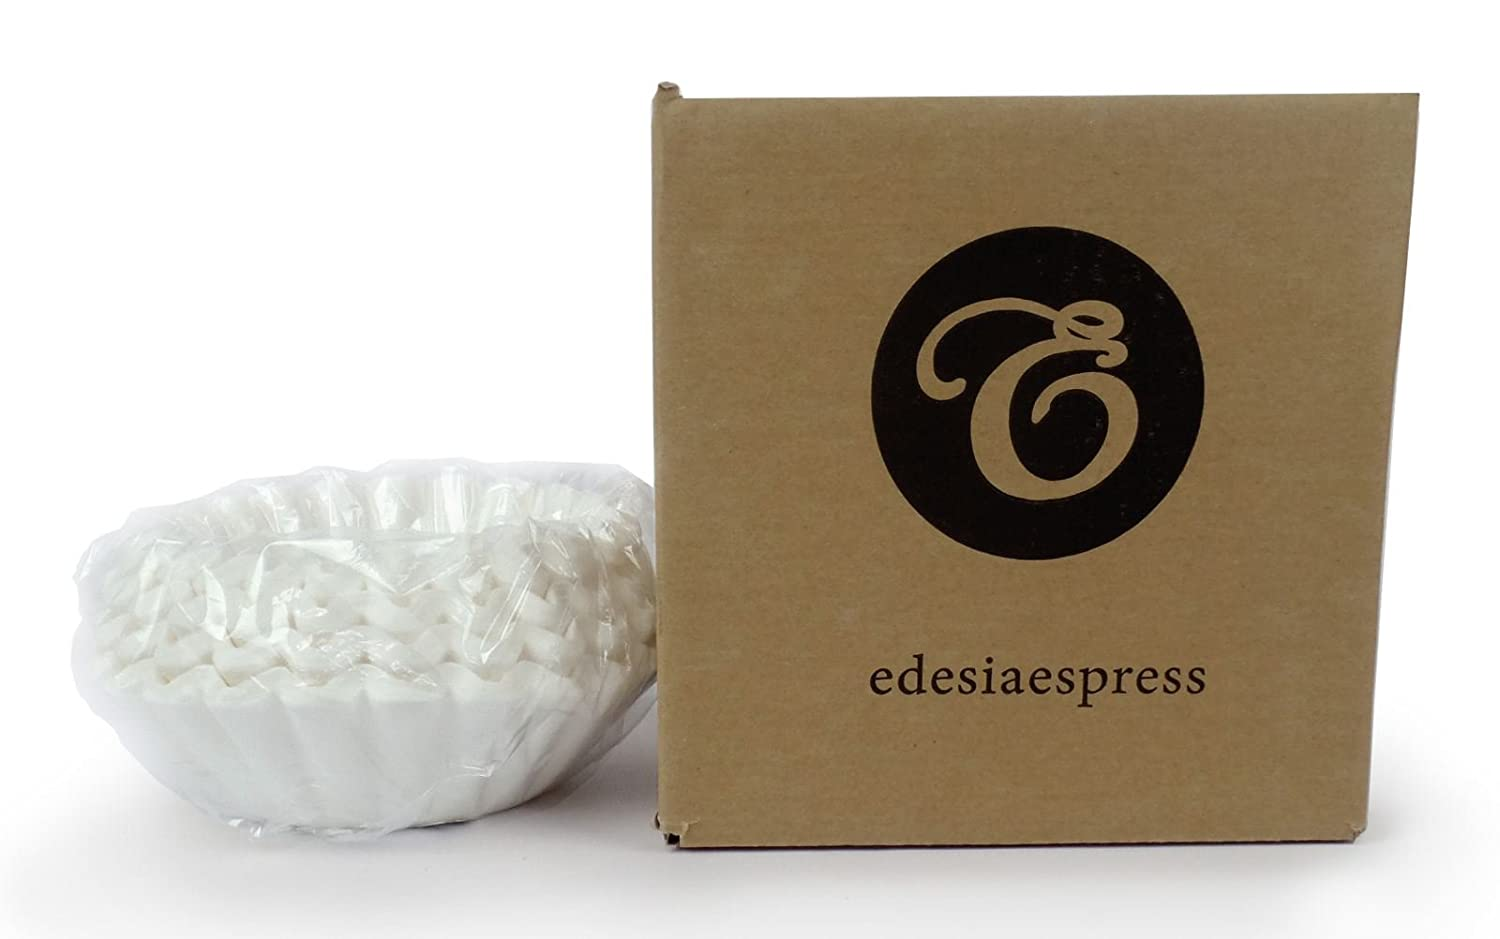 200 x 1¾ Pint/4 to 10 Cup Basket Coffee Filter Papers by EDESIA ESPRESS